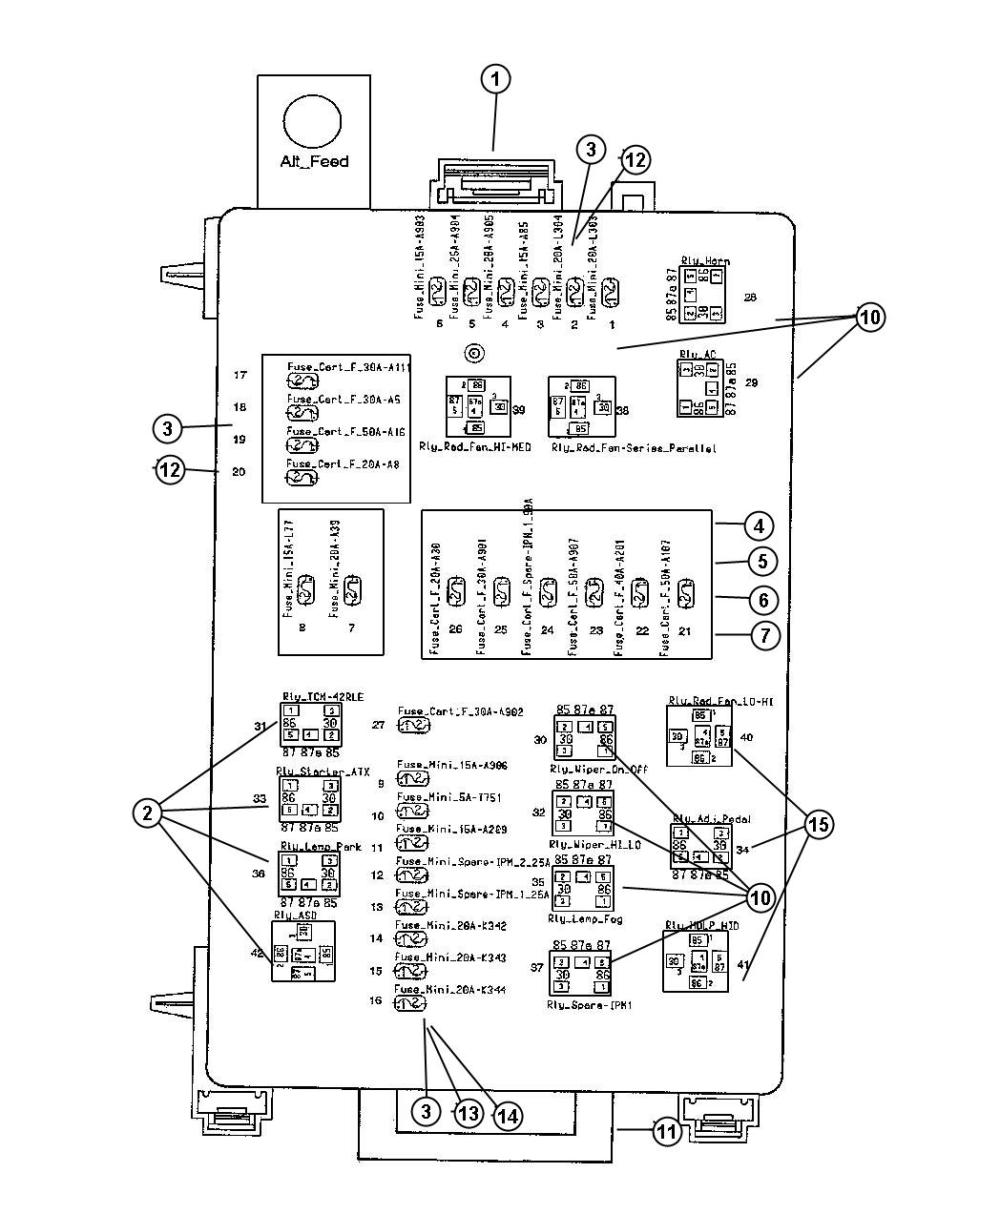 medium resolution of 06 charger fuse box diagram wiring diagram article 2006 dodge charger rear fuse box diagram 2006 charger fuse box